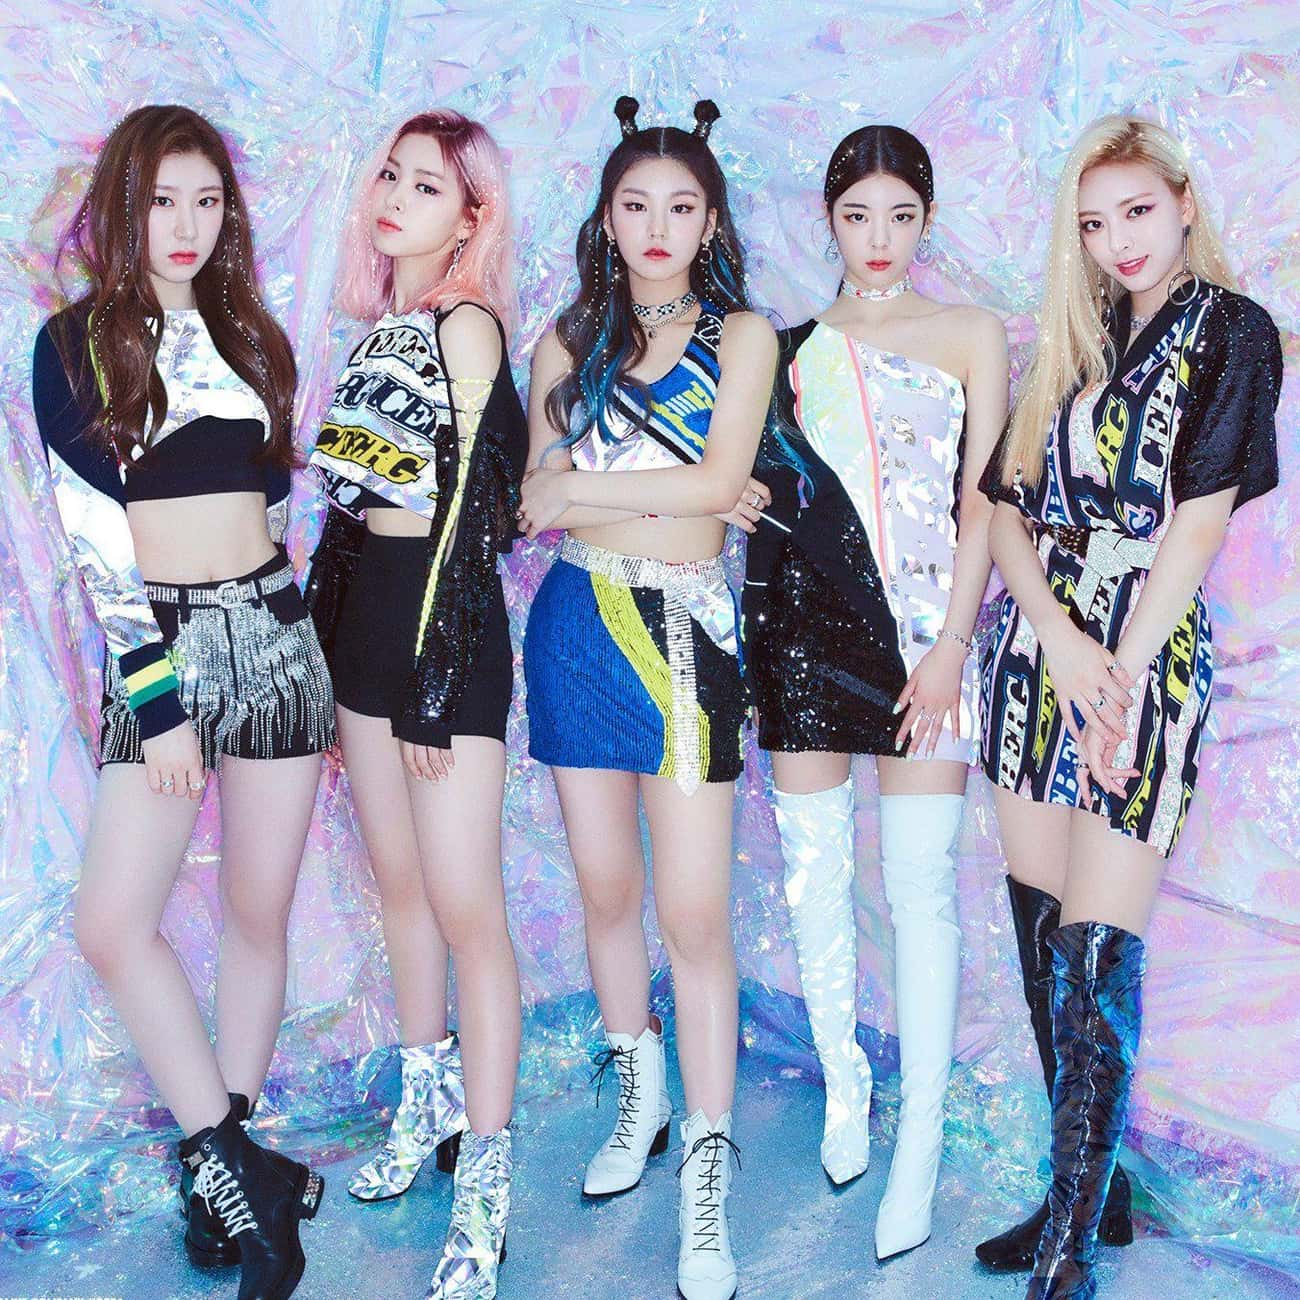 ITZY is listed (or ranked) 2 on the list The Best Kpop Group Debuts Of 2019, Ranked